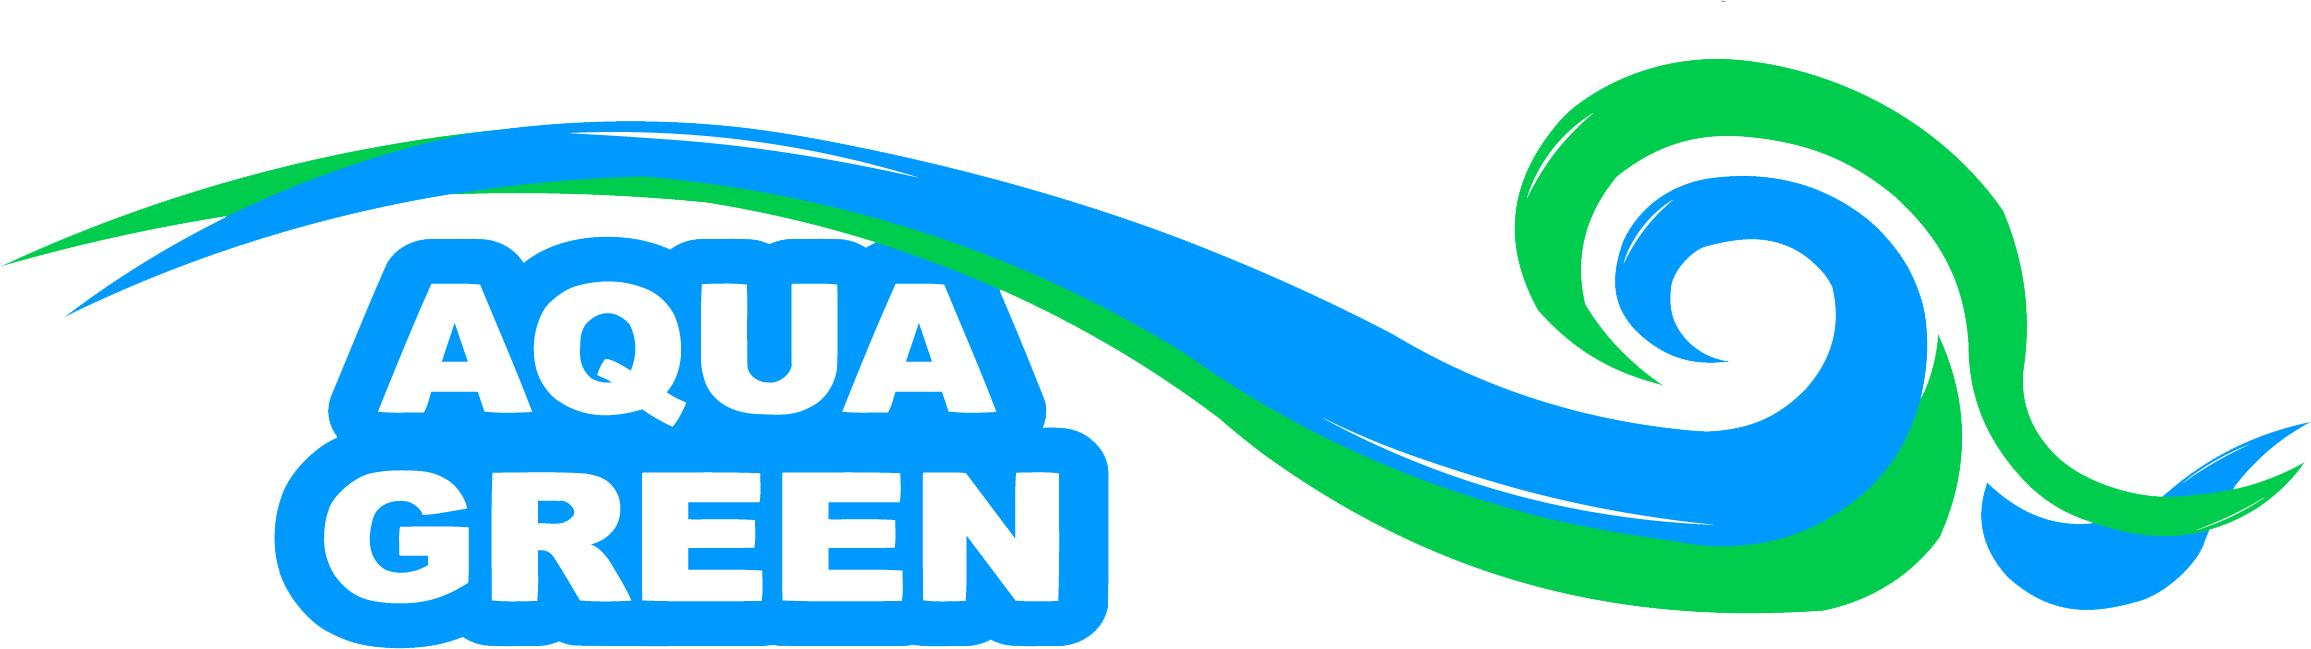 aquagreen logo_1_45_1_1